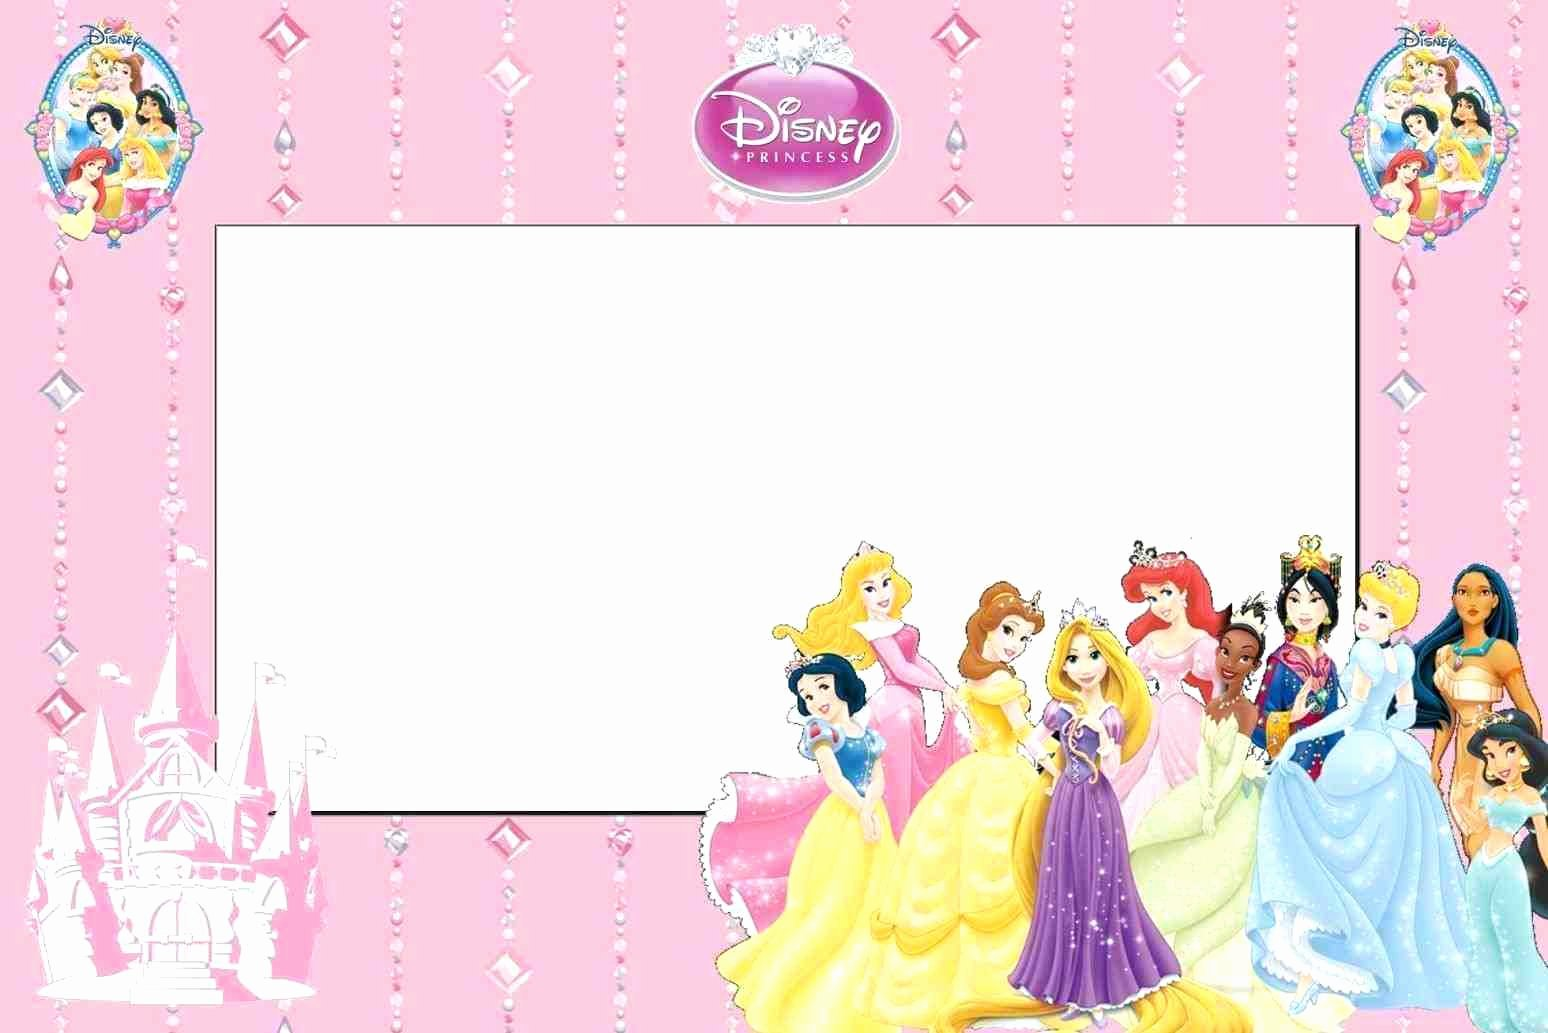 Disney Princess Party Invitations Template